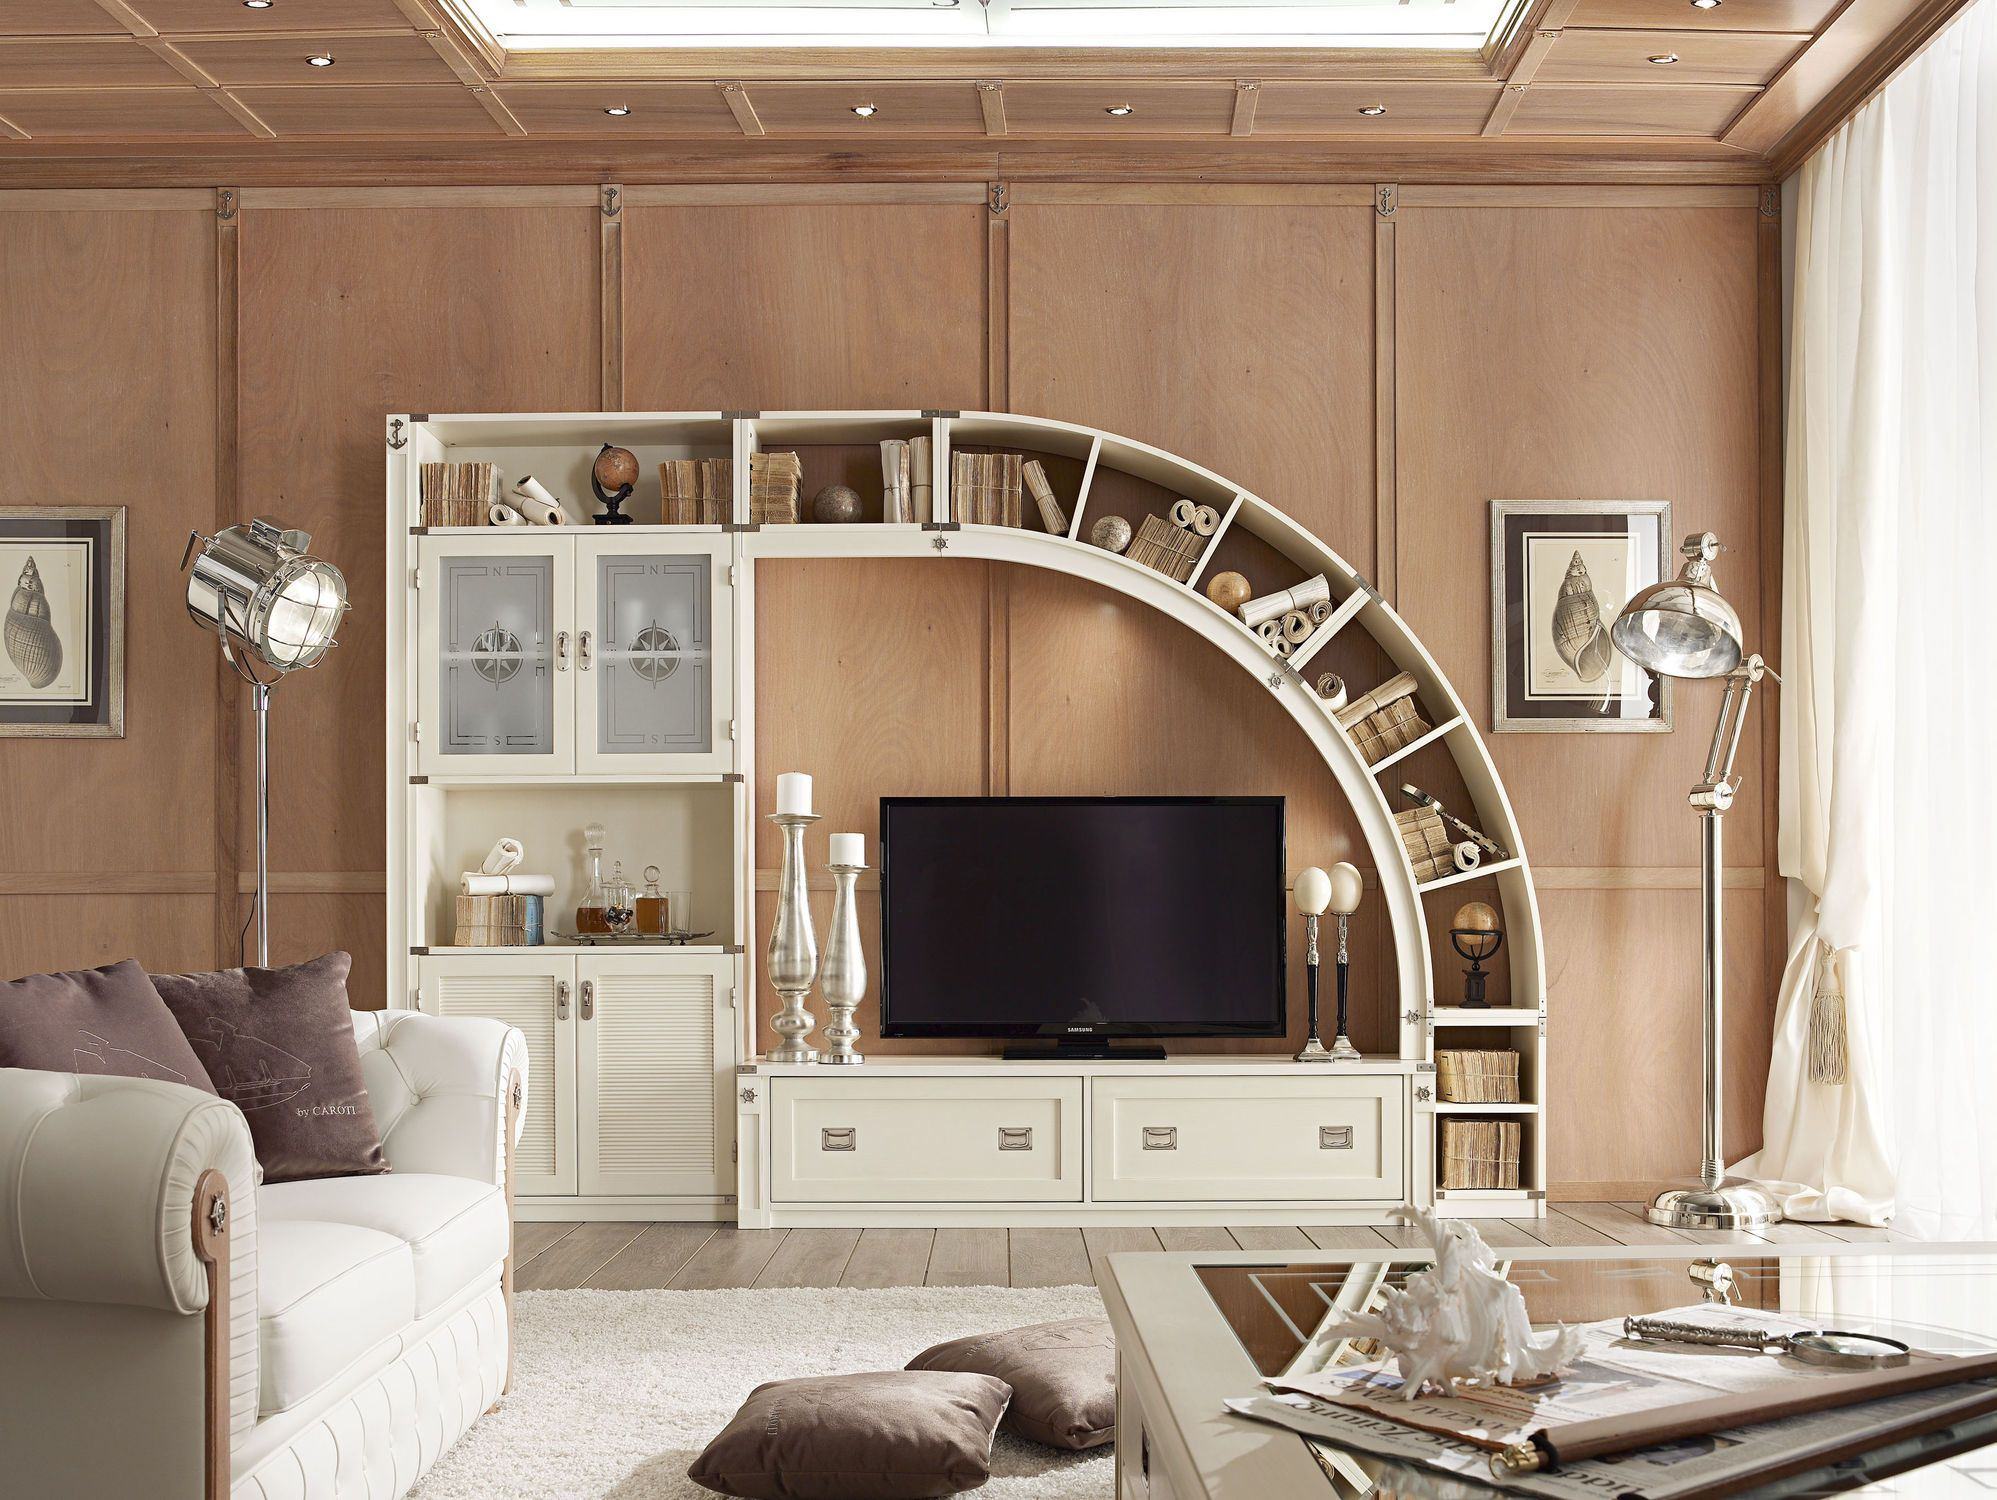 Dining Room Wall Unit Decorationsamazing Tv Wall Unit With Carving Wooden Bookcase At